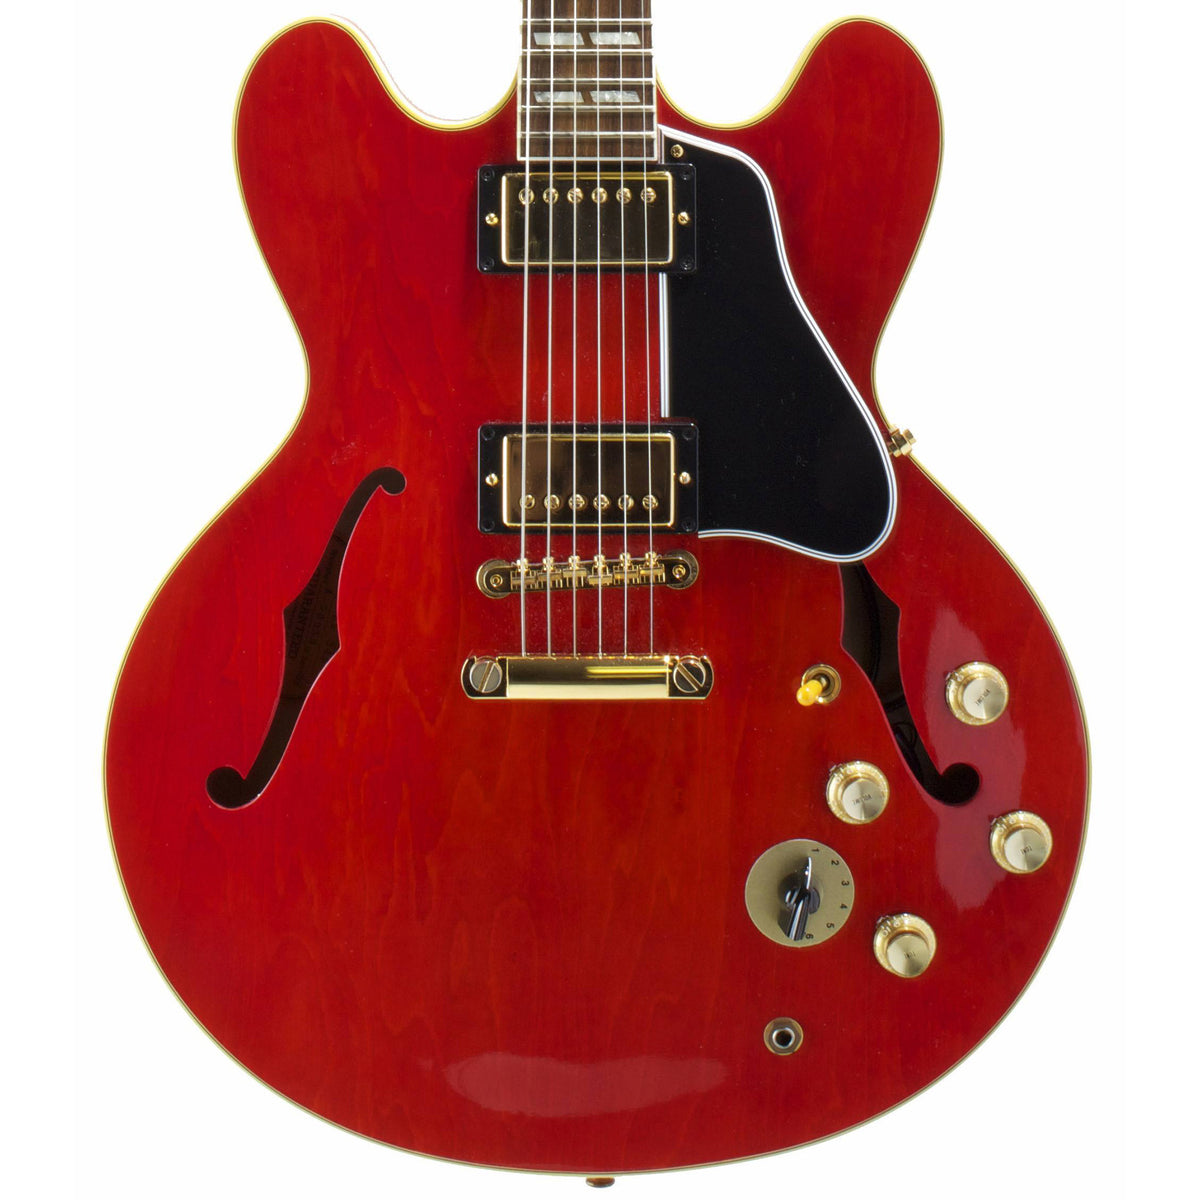 2000 GIbson Custom Shop ES-345 Mono, Cherry Red with Gold - Garrett Park Guitars  - 2